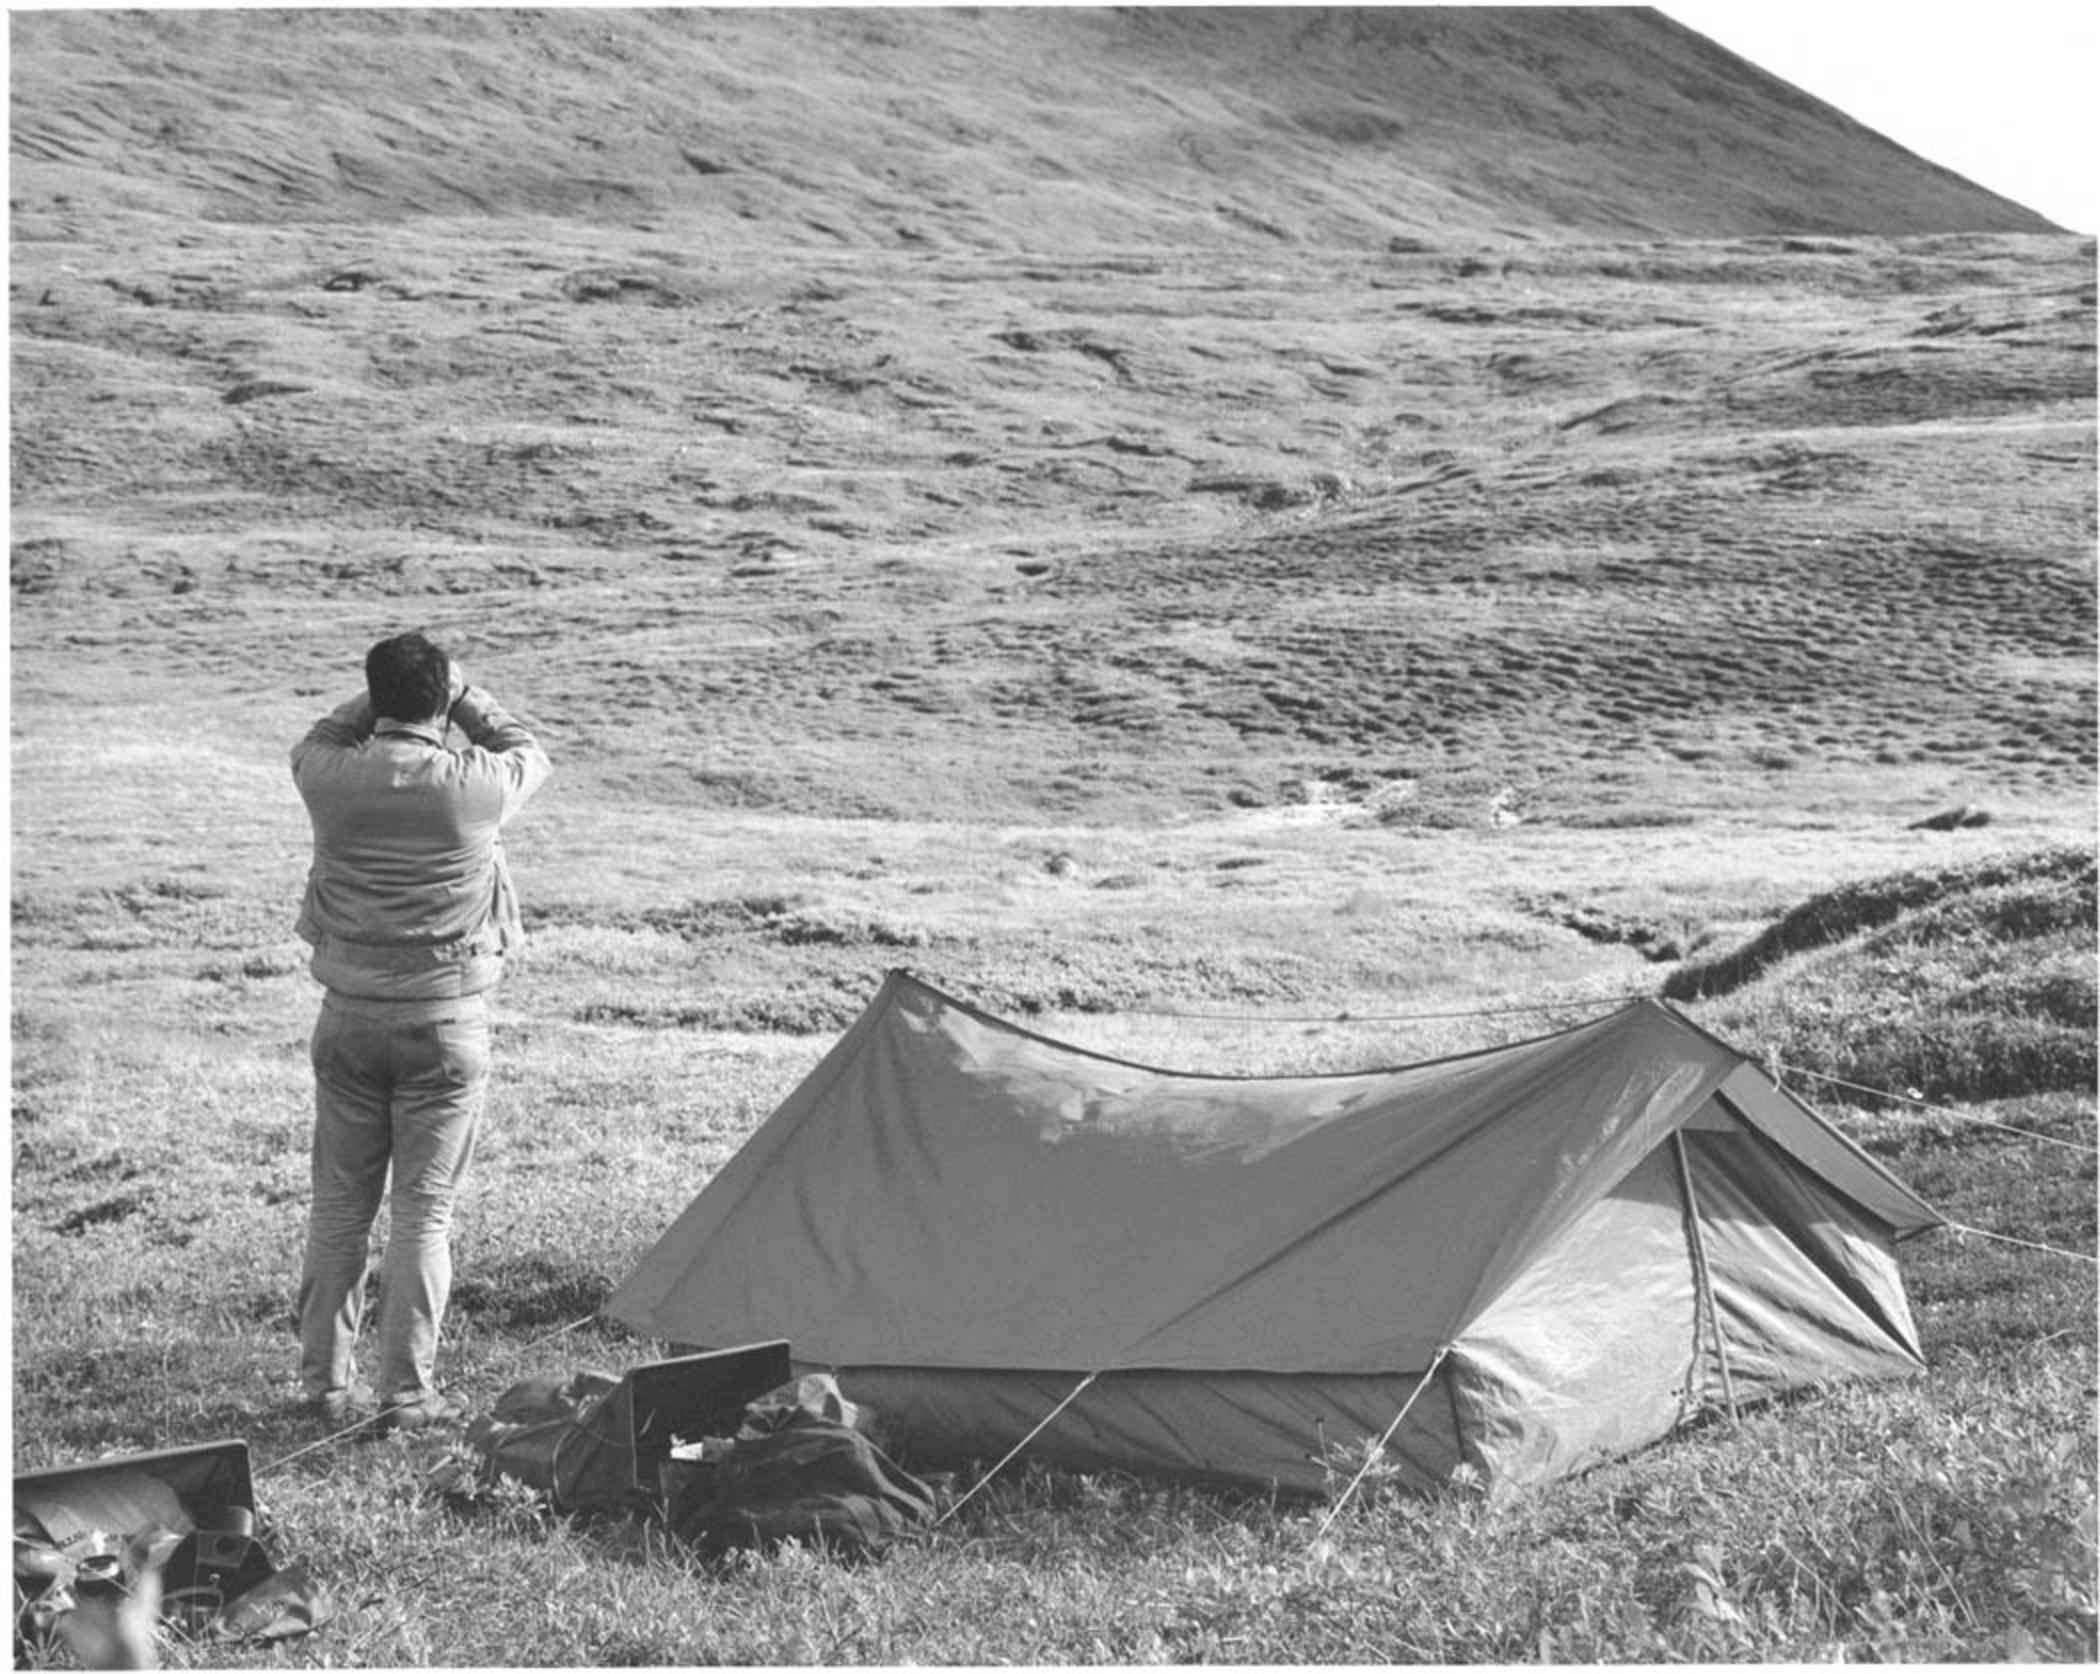 black and white image c&er tent & Free picture: black and white image camper tent